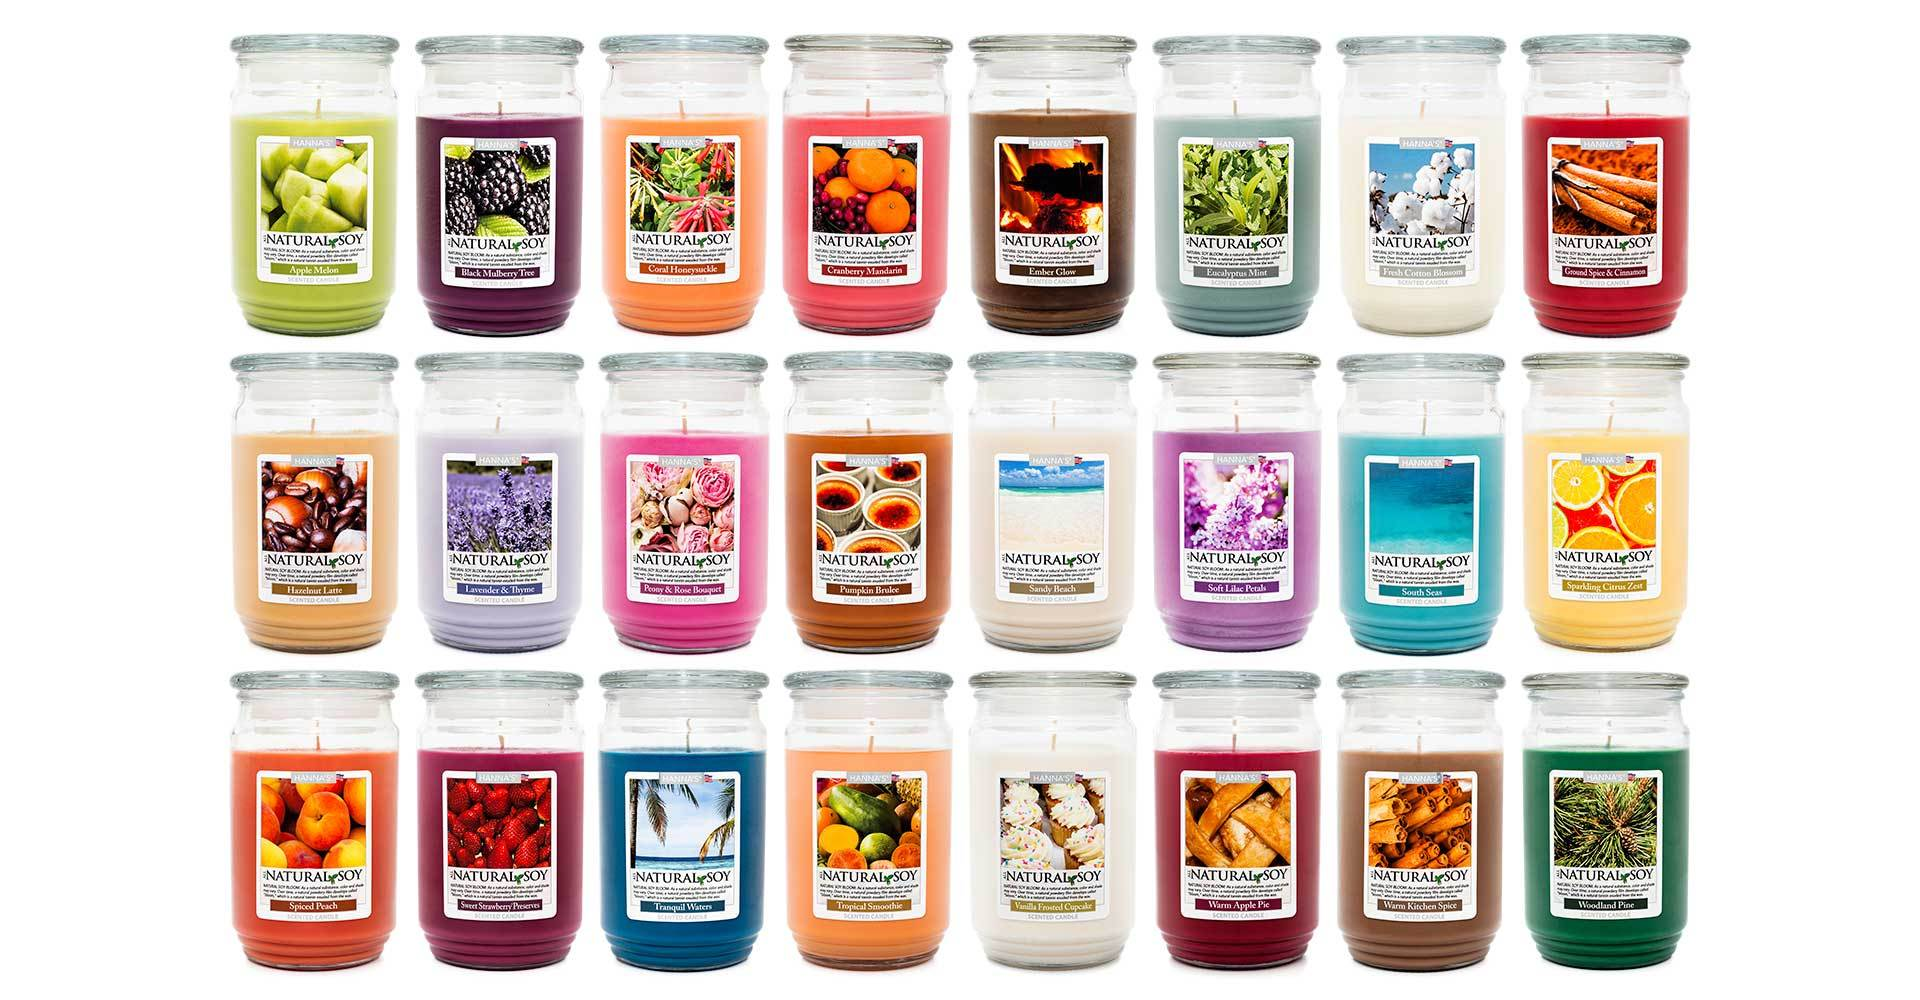 Natural Soy Hazelnut Latte Scented Soy Candle 100% Soy Candles Candlemart.com $ 11.99